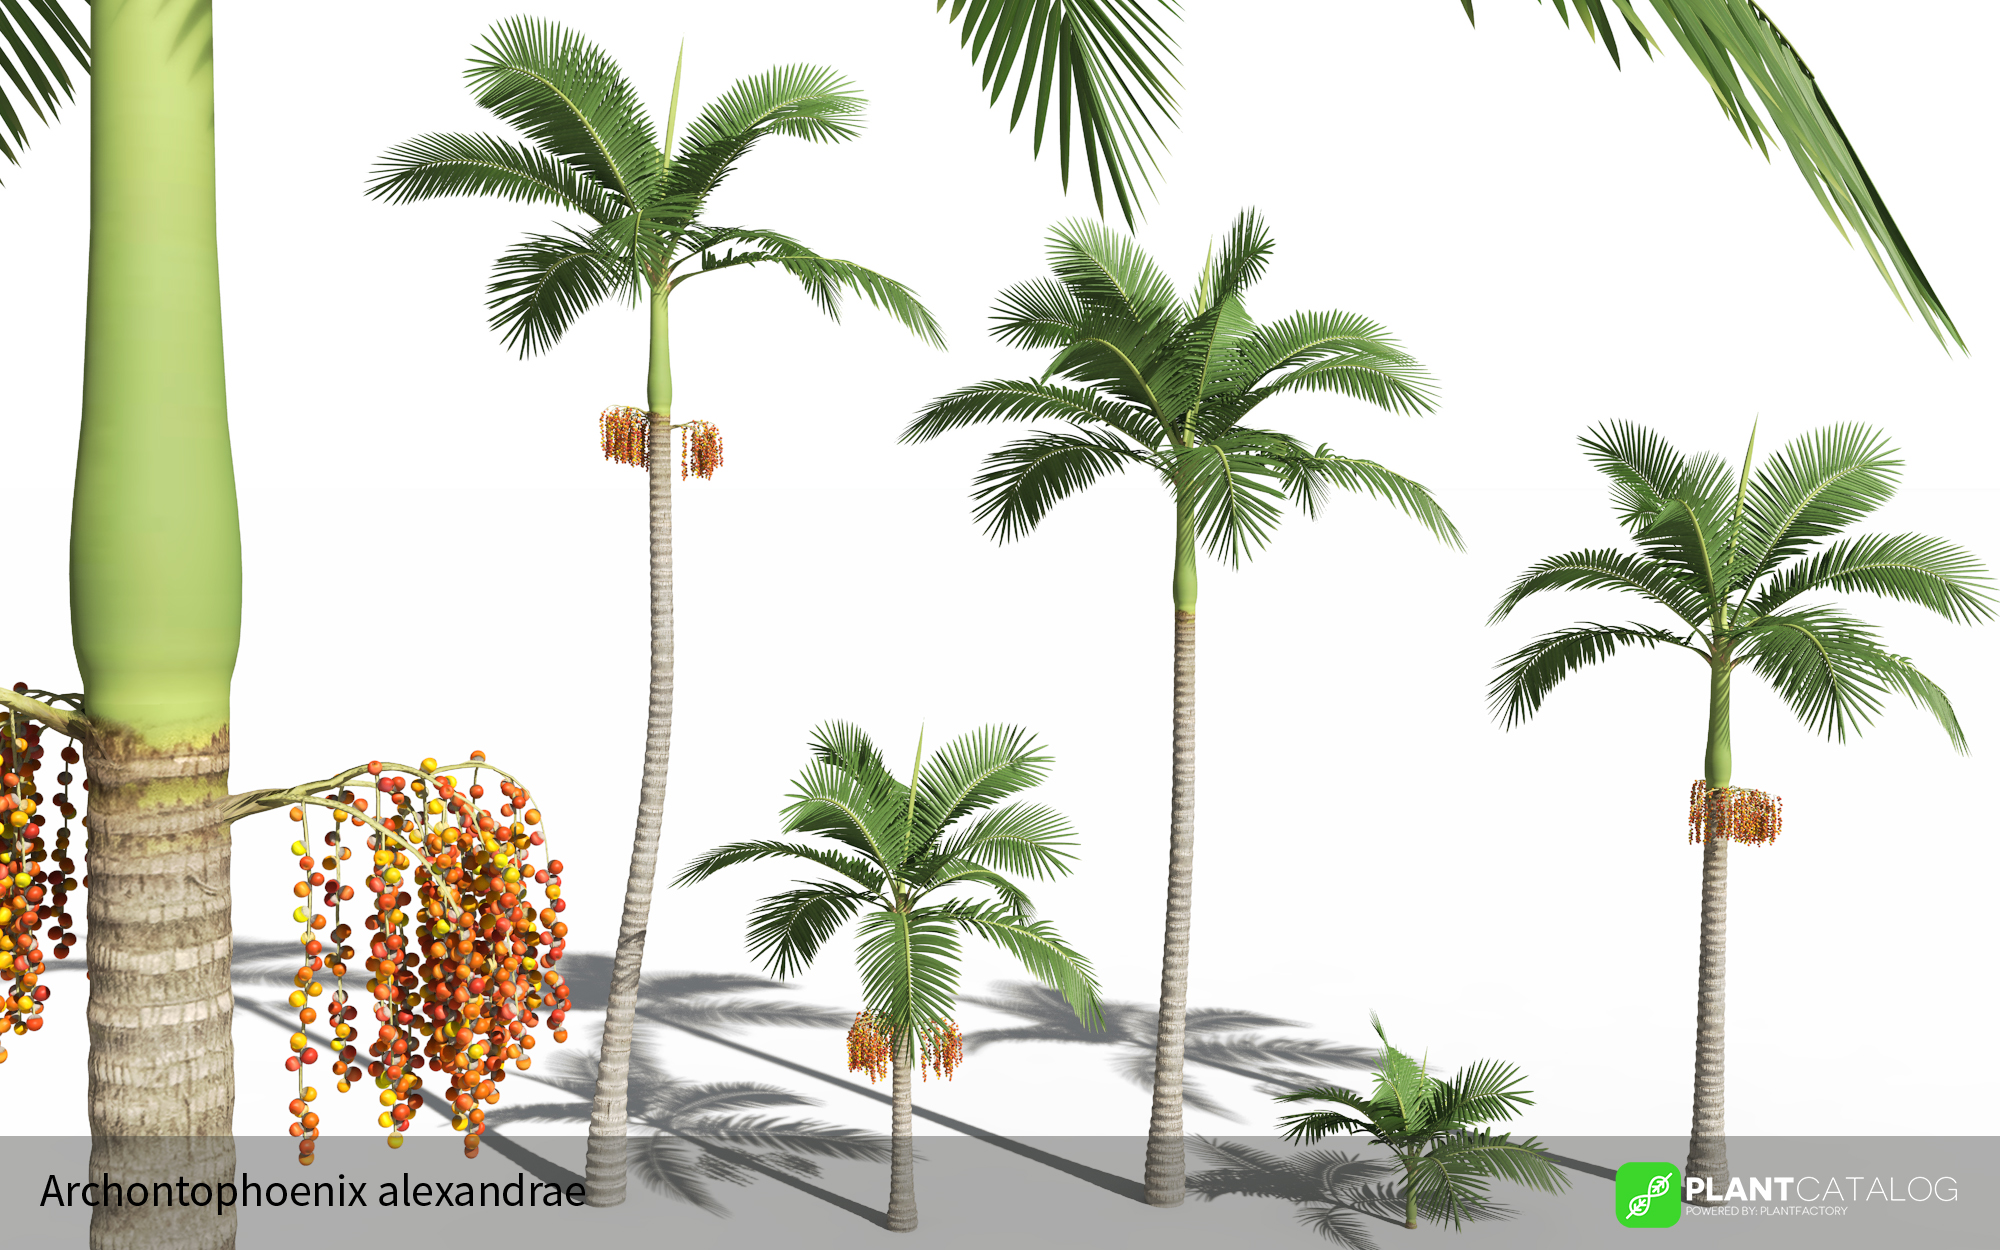 3D model of the Alexander palm - Archontophoenix alexandrae - from the PlantCatalog, rendered in VUE